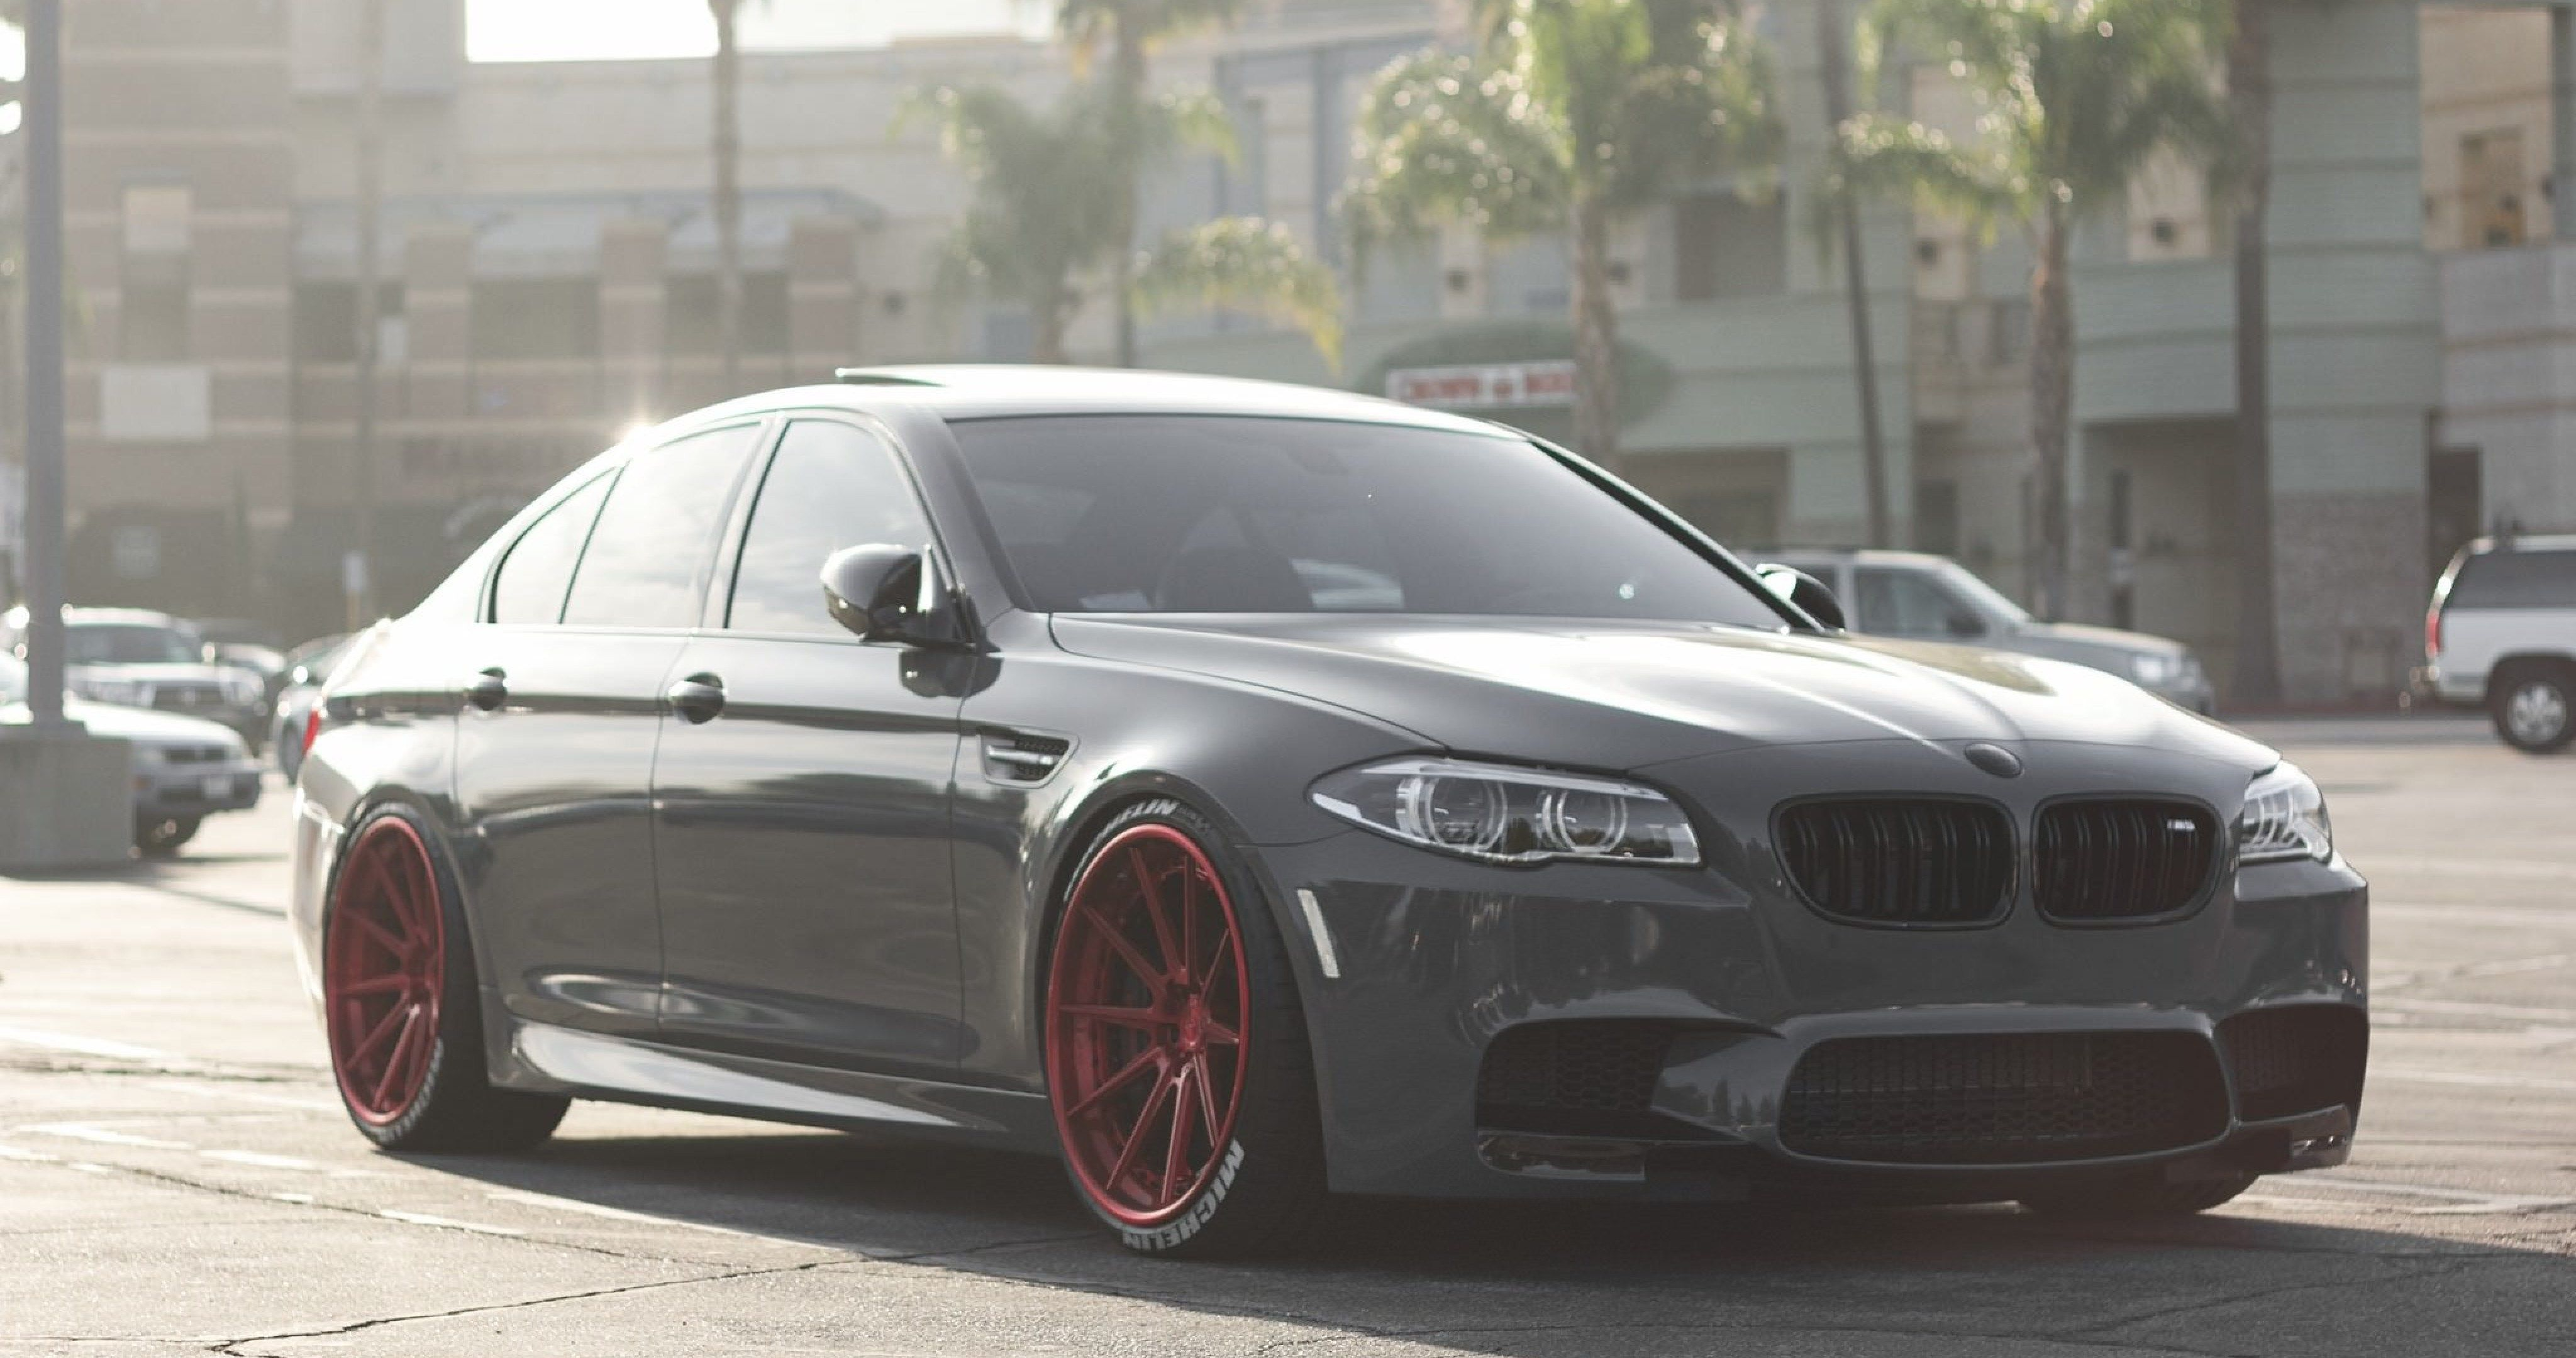 bmw m5 f10 4k ultra hd wallpaper for android - medium